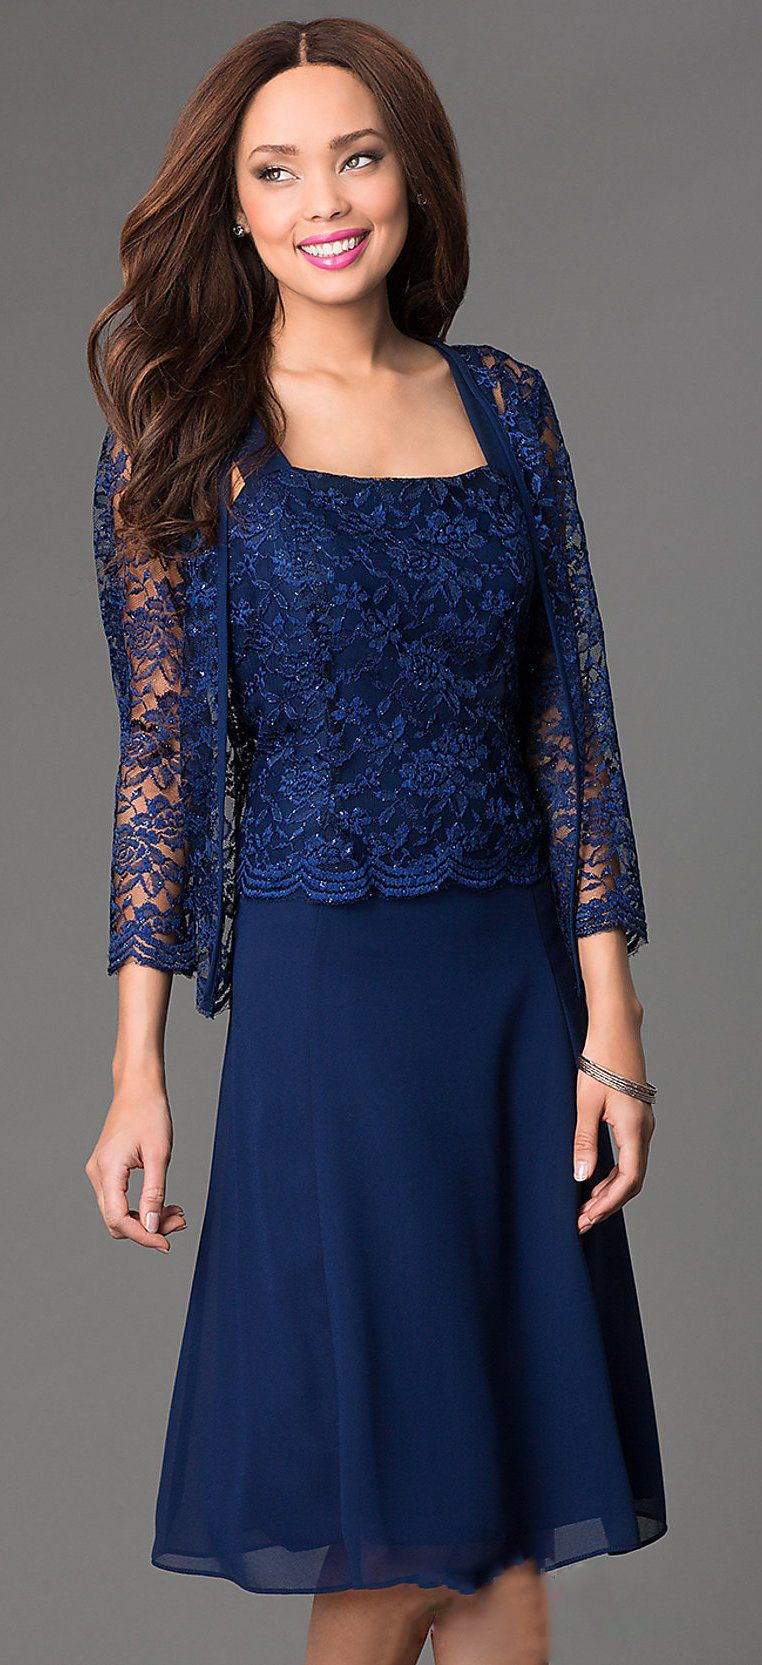 Short Navy Blue Mother of Groom Dress Chiffon Knee Length Lace ...